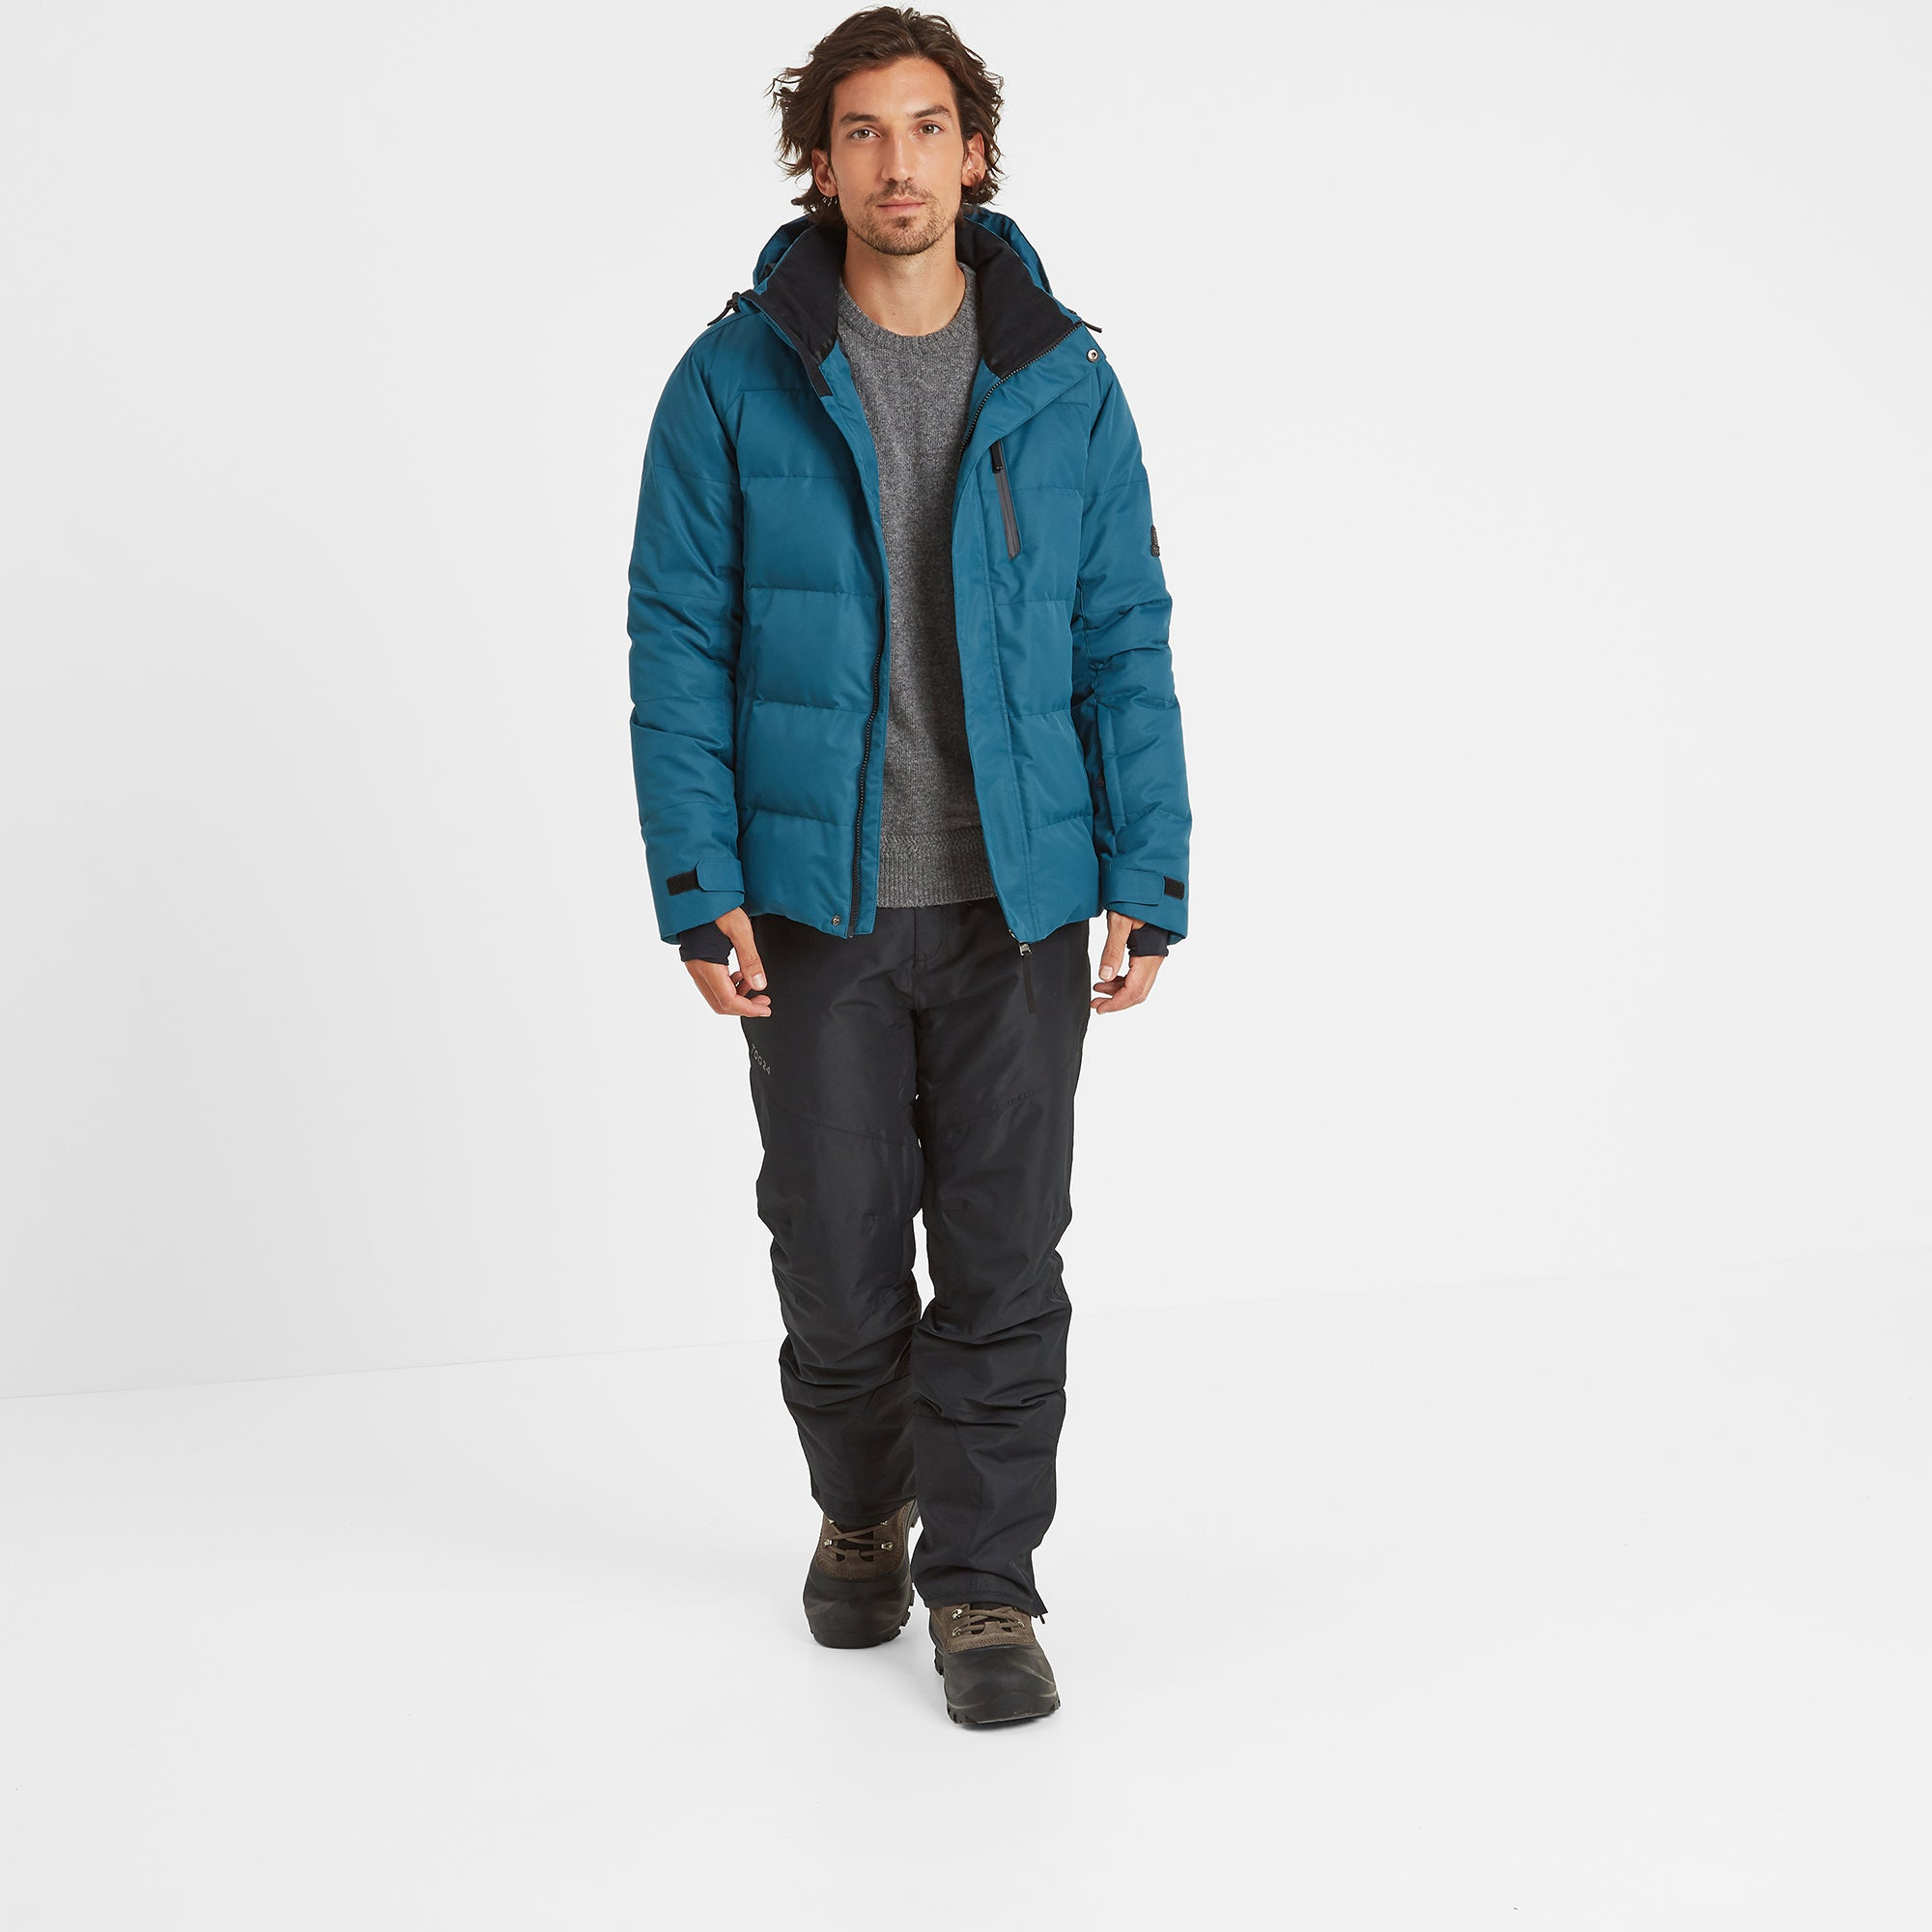 Gunby Mens Down Filled Ski Jacket - Lagoon